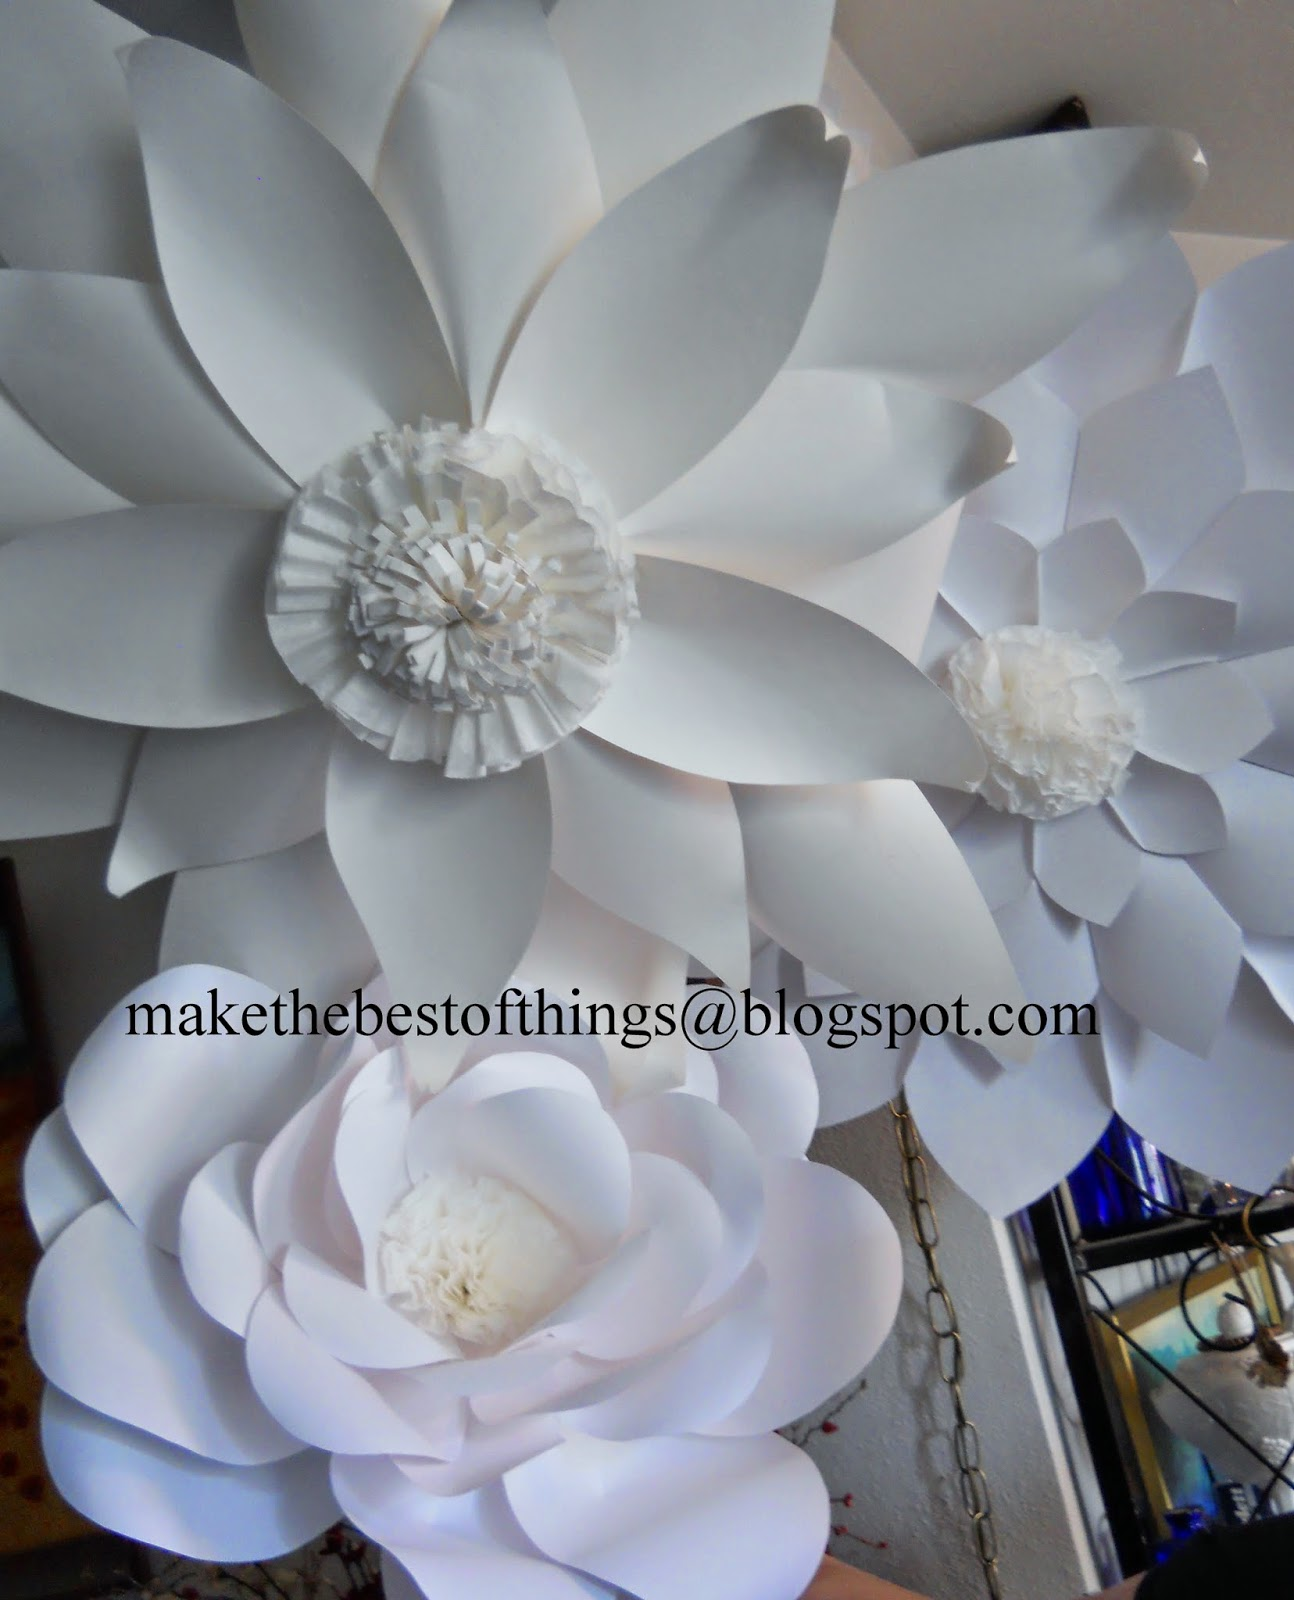 Make the best of things huge flowers for a boho wedding here are the first three flowers hung together see how the paper she used has different shades of white we liked that sweet serendipity mightylinksfo